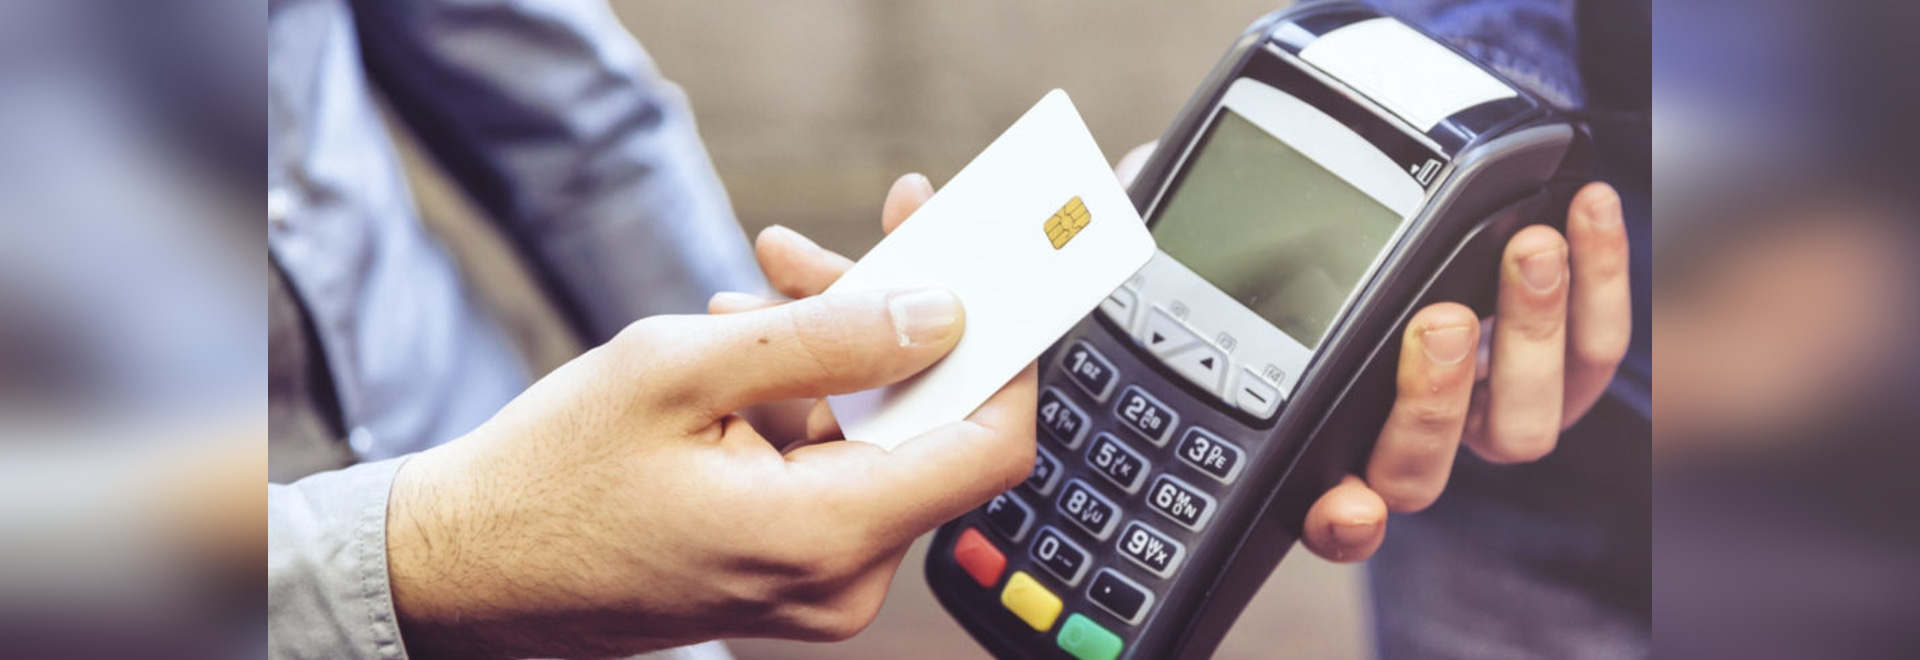 Security cryptocontroller targets contactless payment apps